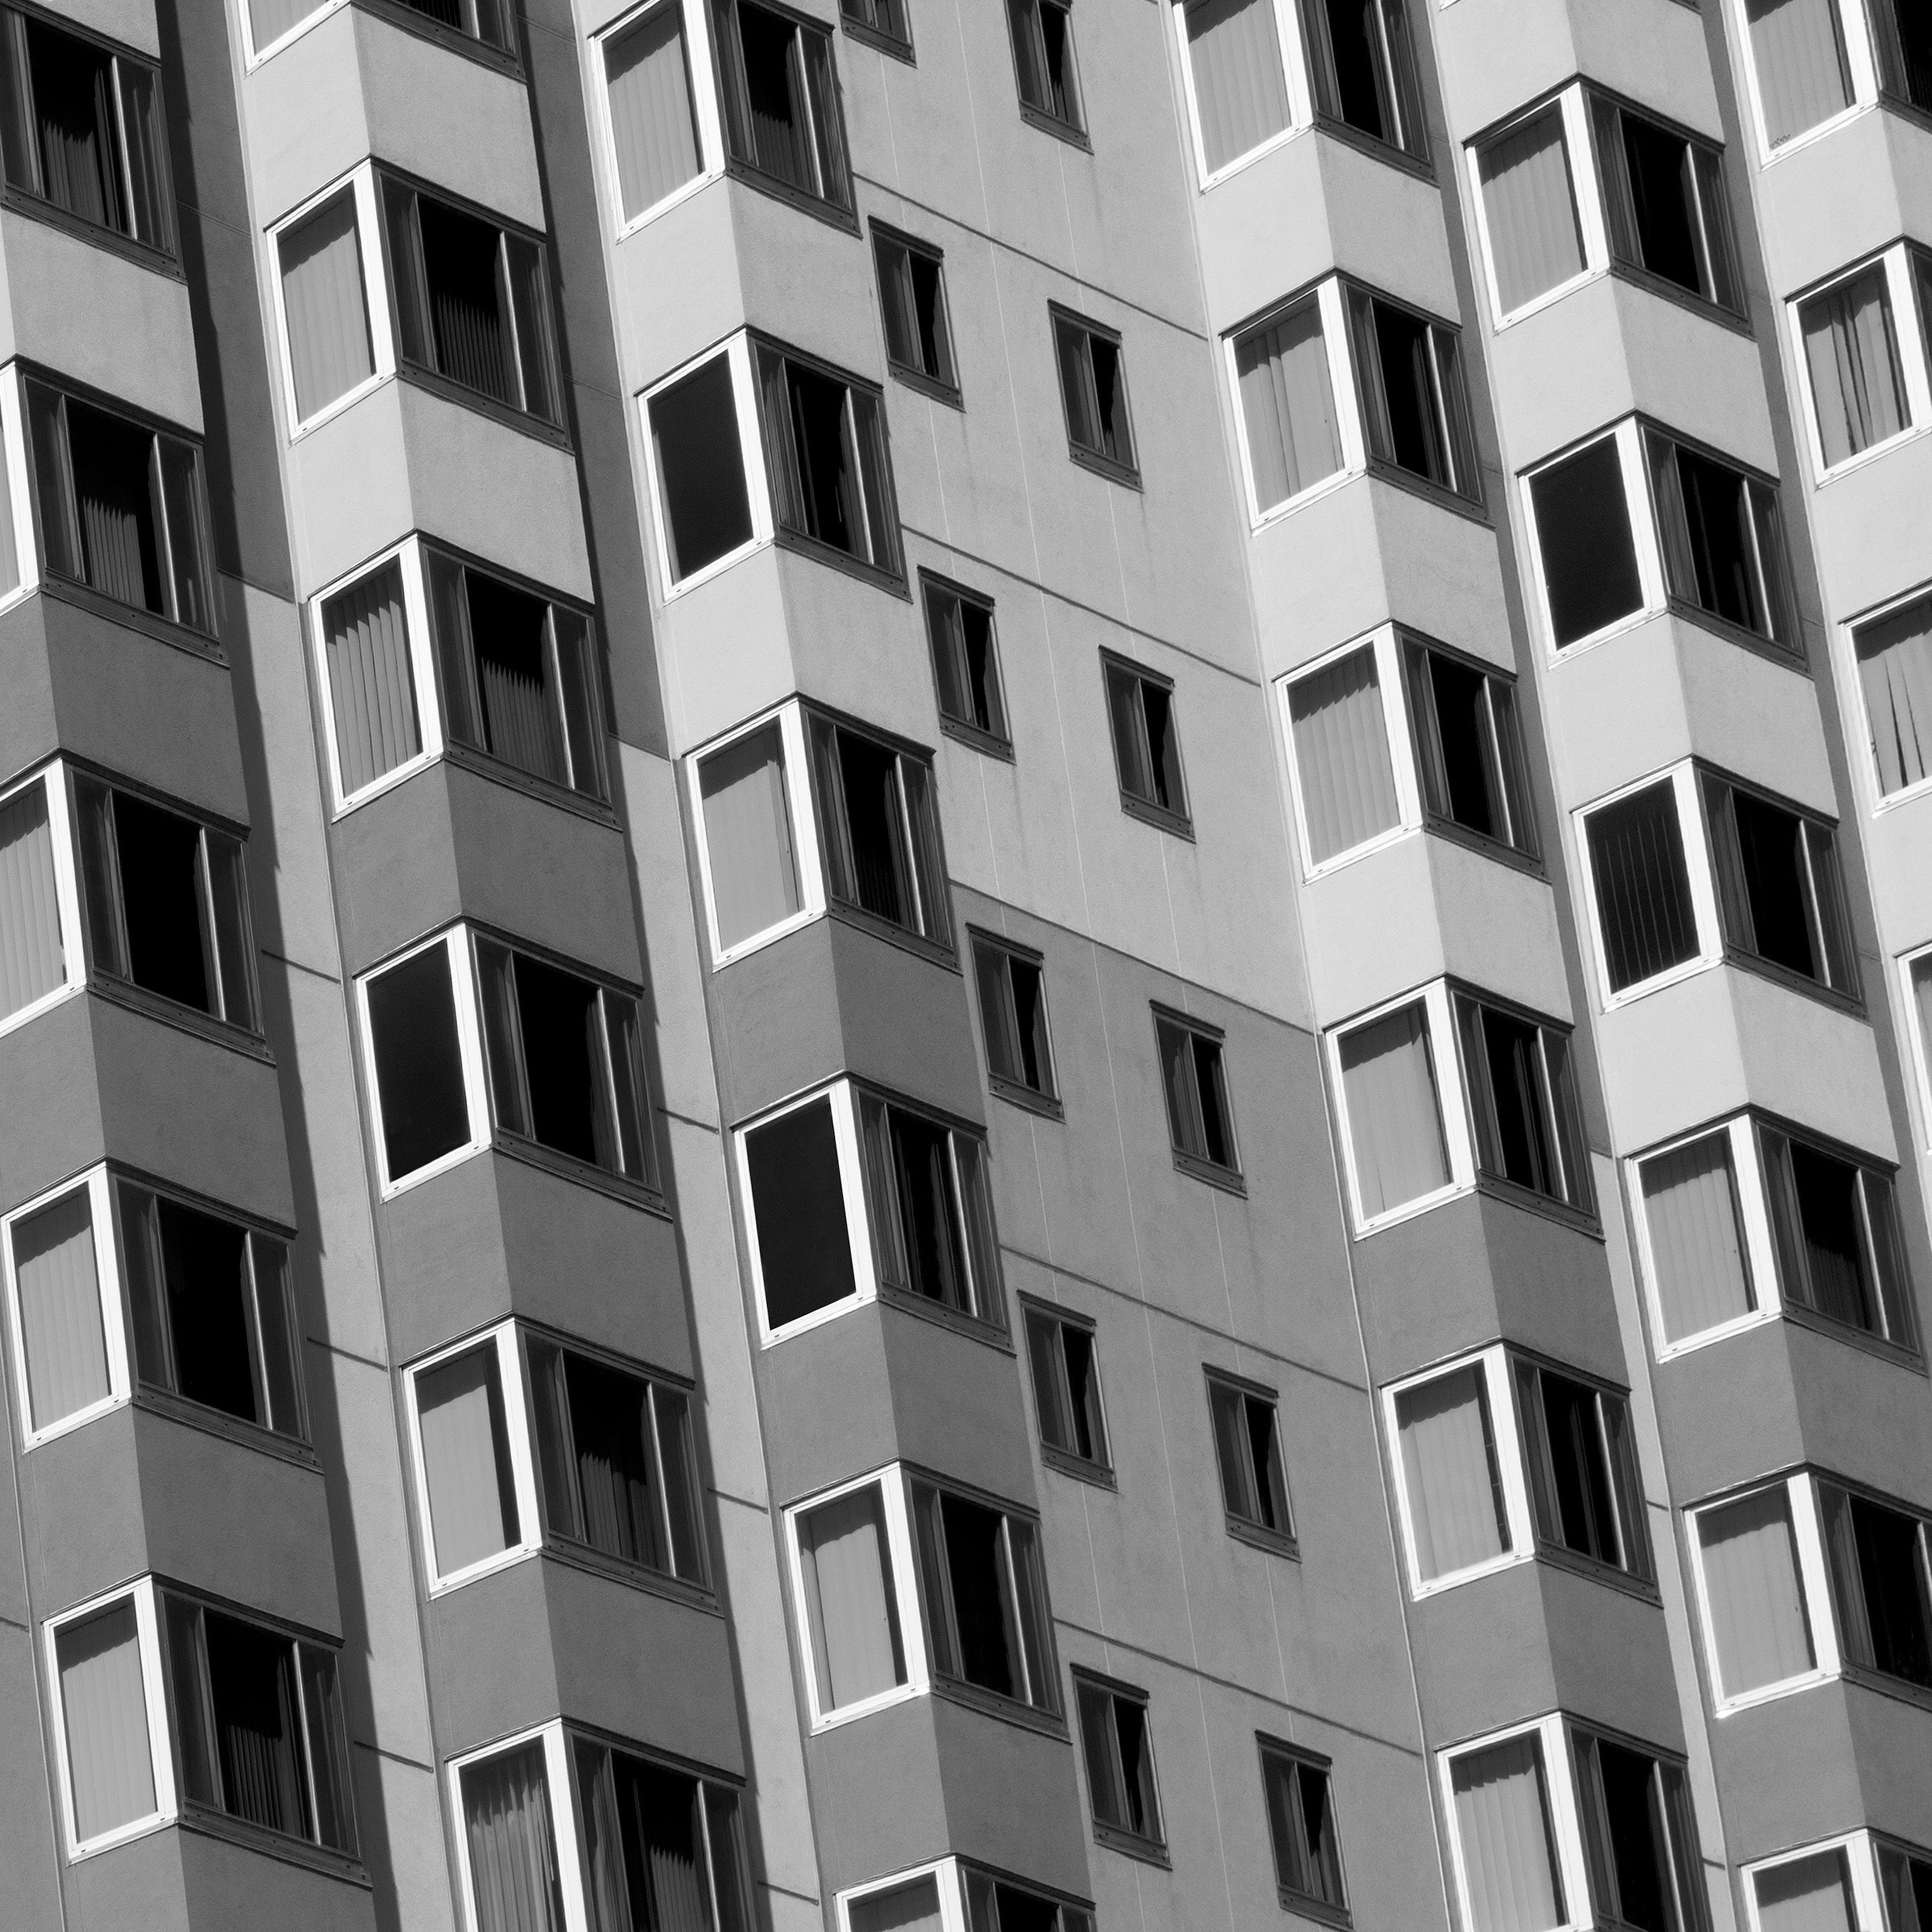 building exterior, architecture, built structure, window, full frame, backgrounds, apartment, city, repetition, residential building, residential structure, building, in a row, low angle view, balcony, day, no people, outdoors, pattern, modern